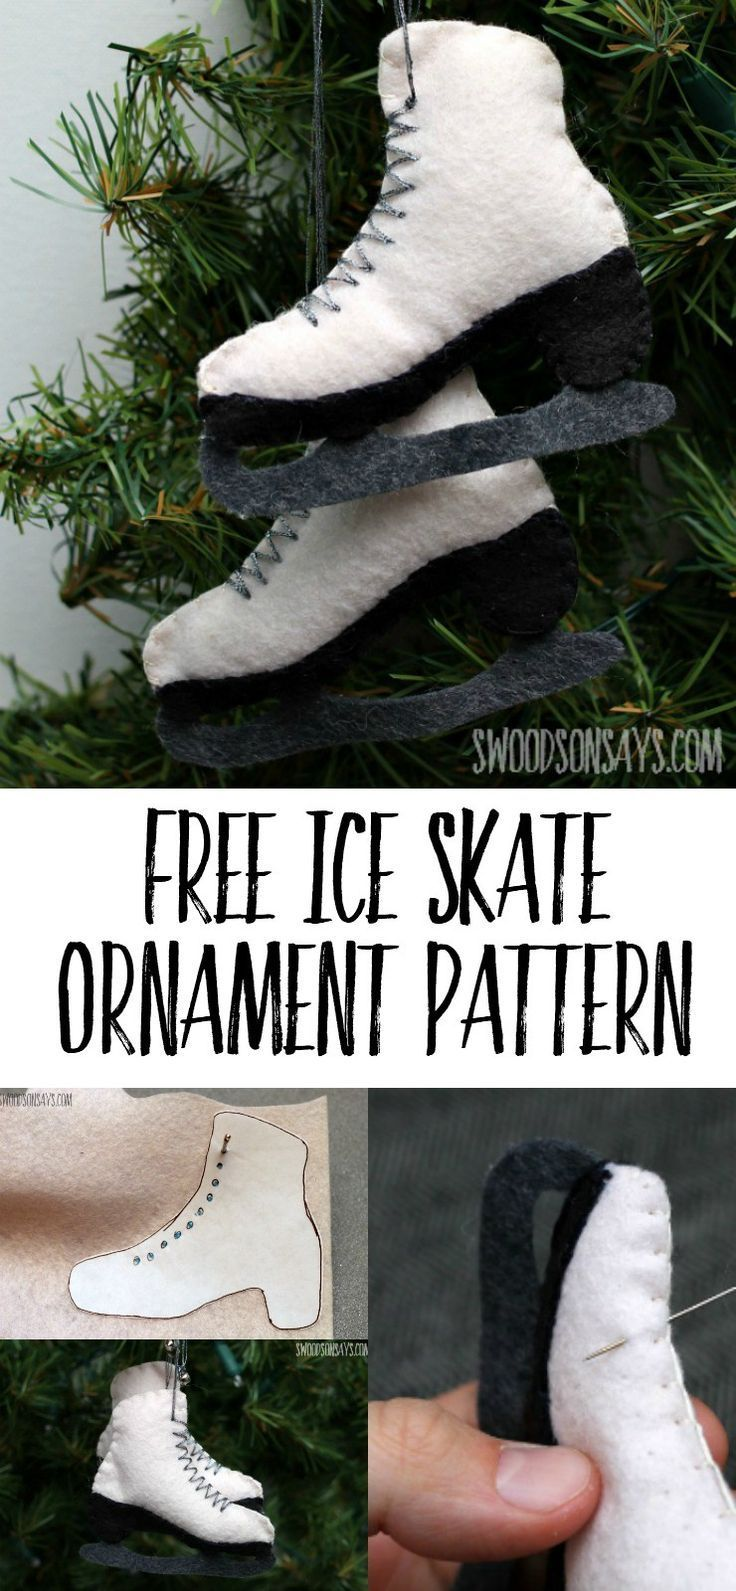 A free felt ice skate ornament pattern, a perfect Christmas craft to gift or hang! No special skills needed, this is hand sewn with wool felt. #freeornamentpattern